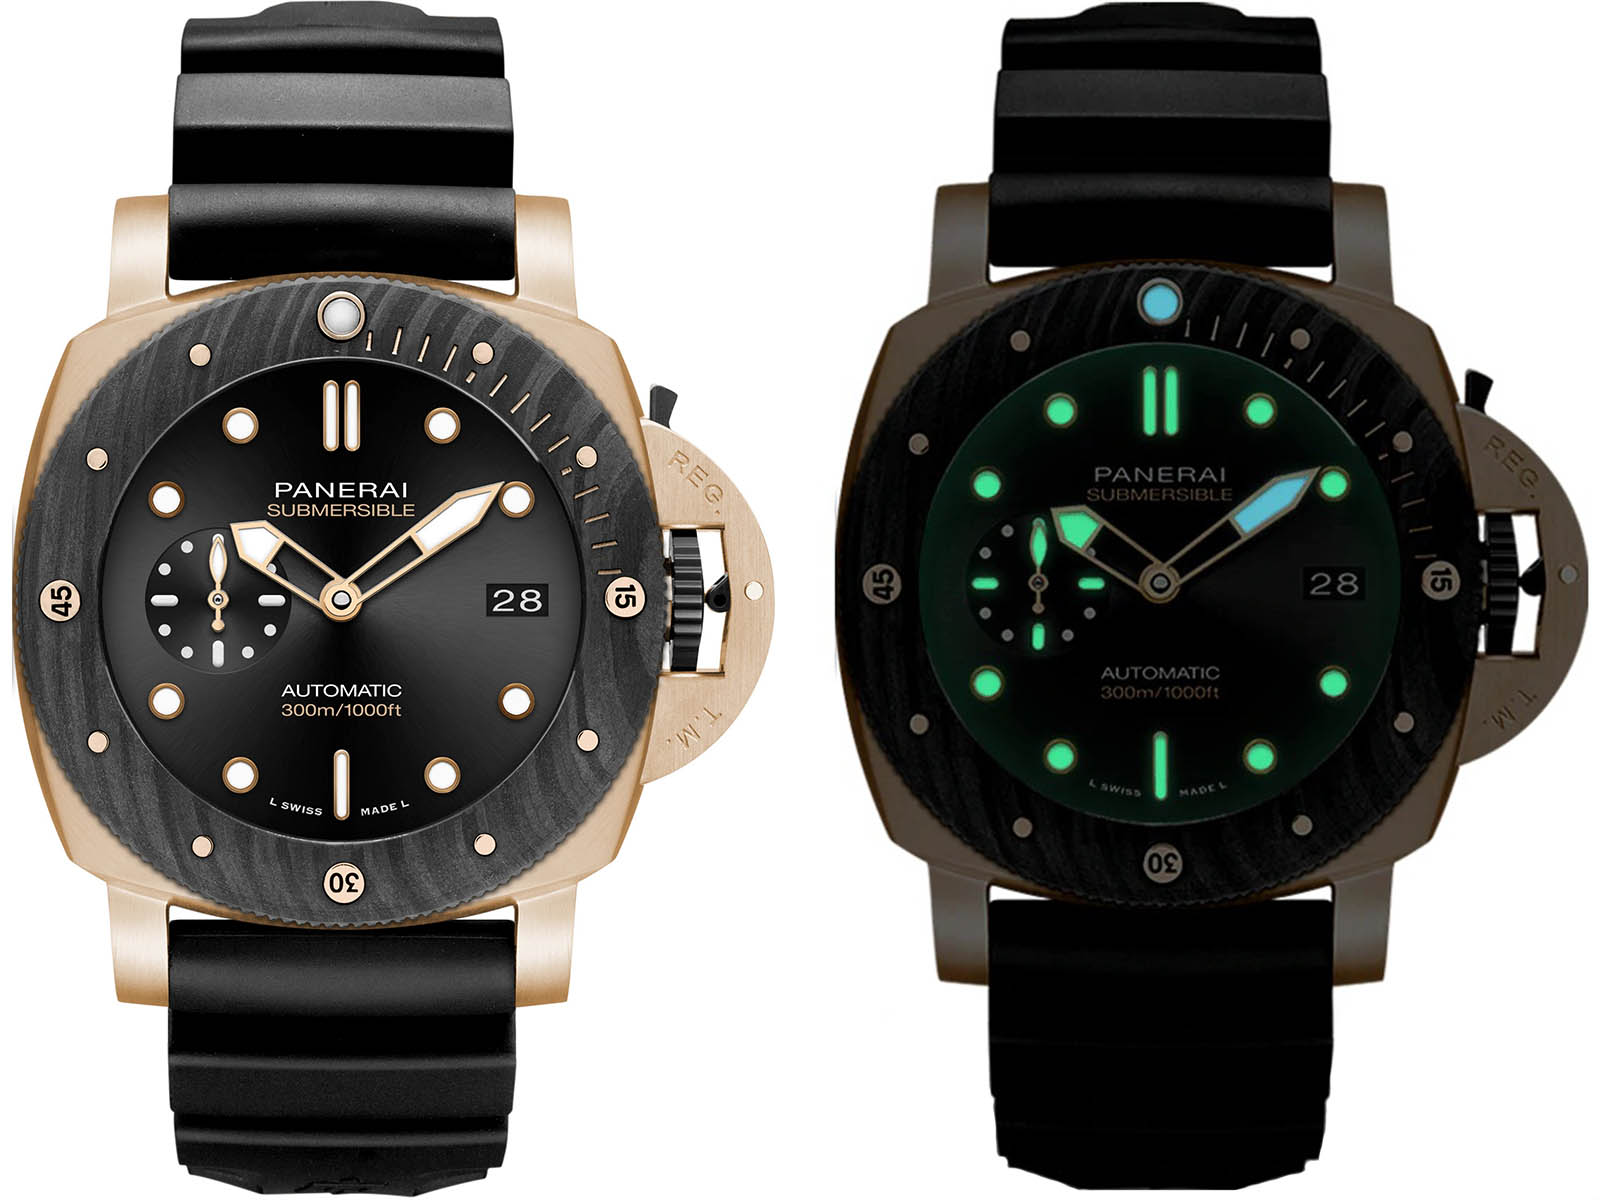 pam01070-panerai-submersible-goldtechtm-44-mm-6.jpg